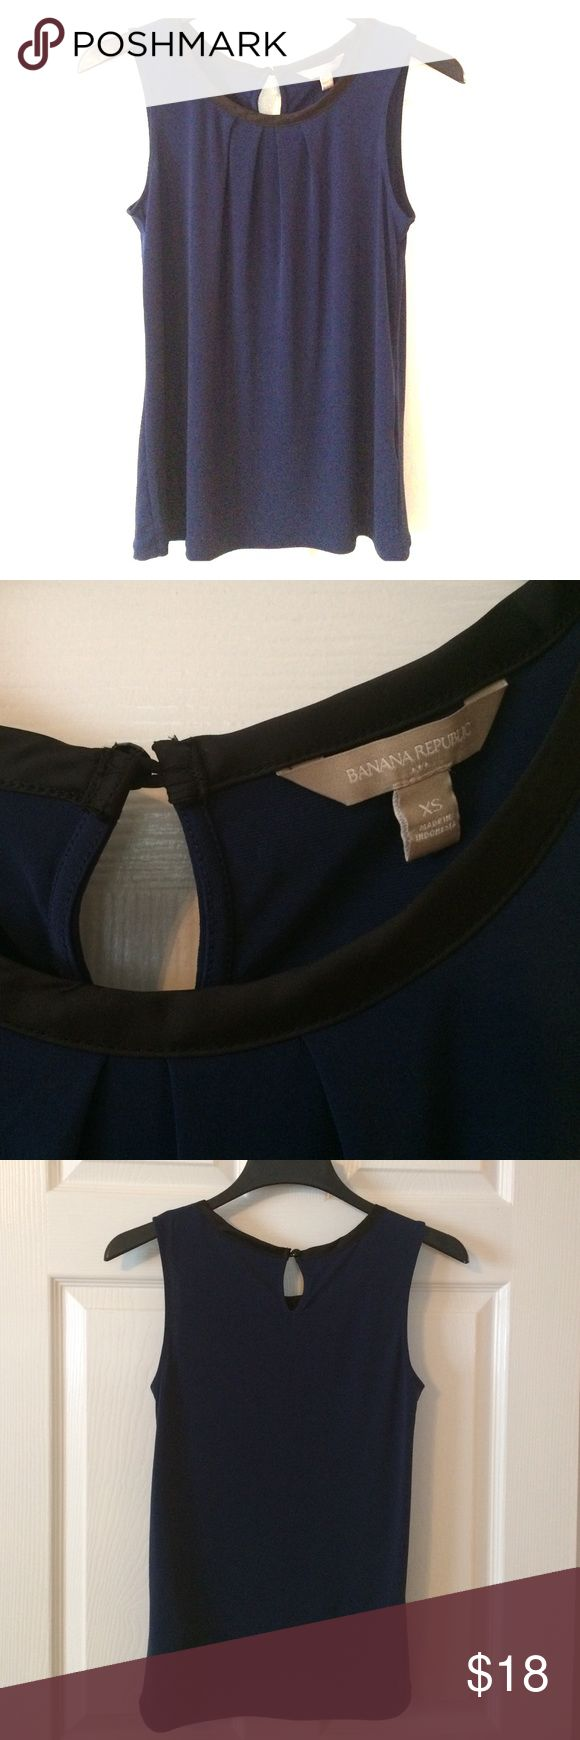 Banana Republic Sleeveless Blouse NWOT Deep blue sleeveless top with black satin trim.  95% polyester 5% spandex.  Machine wash.  NWOT.  The photo doesn't do the shirt credit - it's a beautiful, deep sapphire blue and the black satin trim really stands out. Banana Republic Tops Blouses